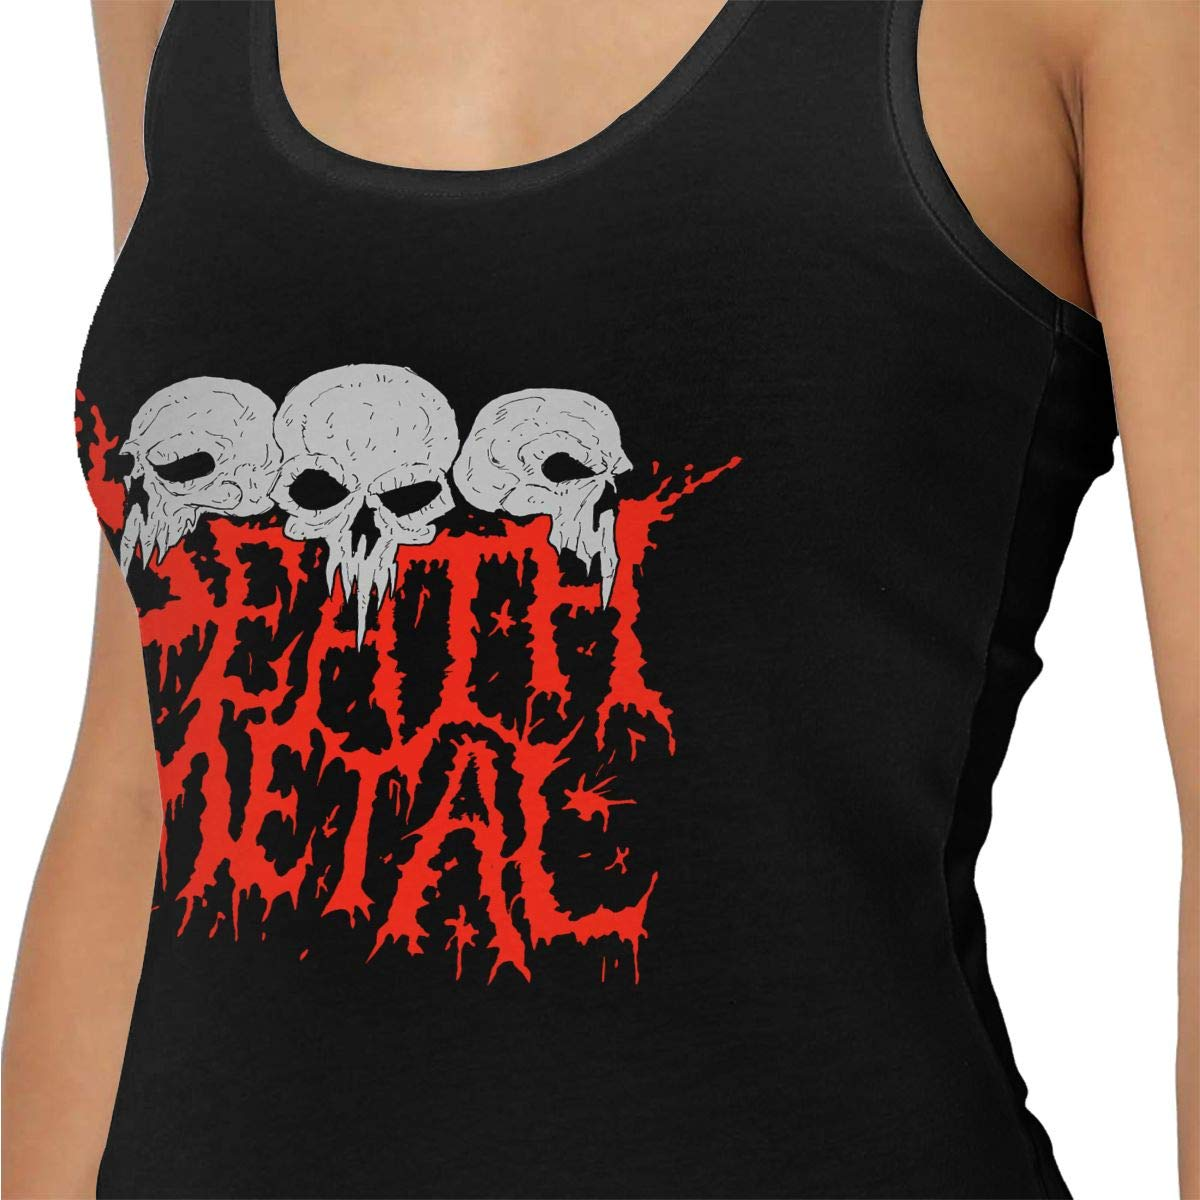 Dwight E Hoskins Cannibal Corpse Women Cotton Running Workouts Clothes Yoga Tank Tops Black